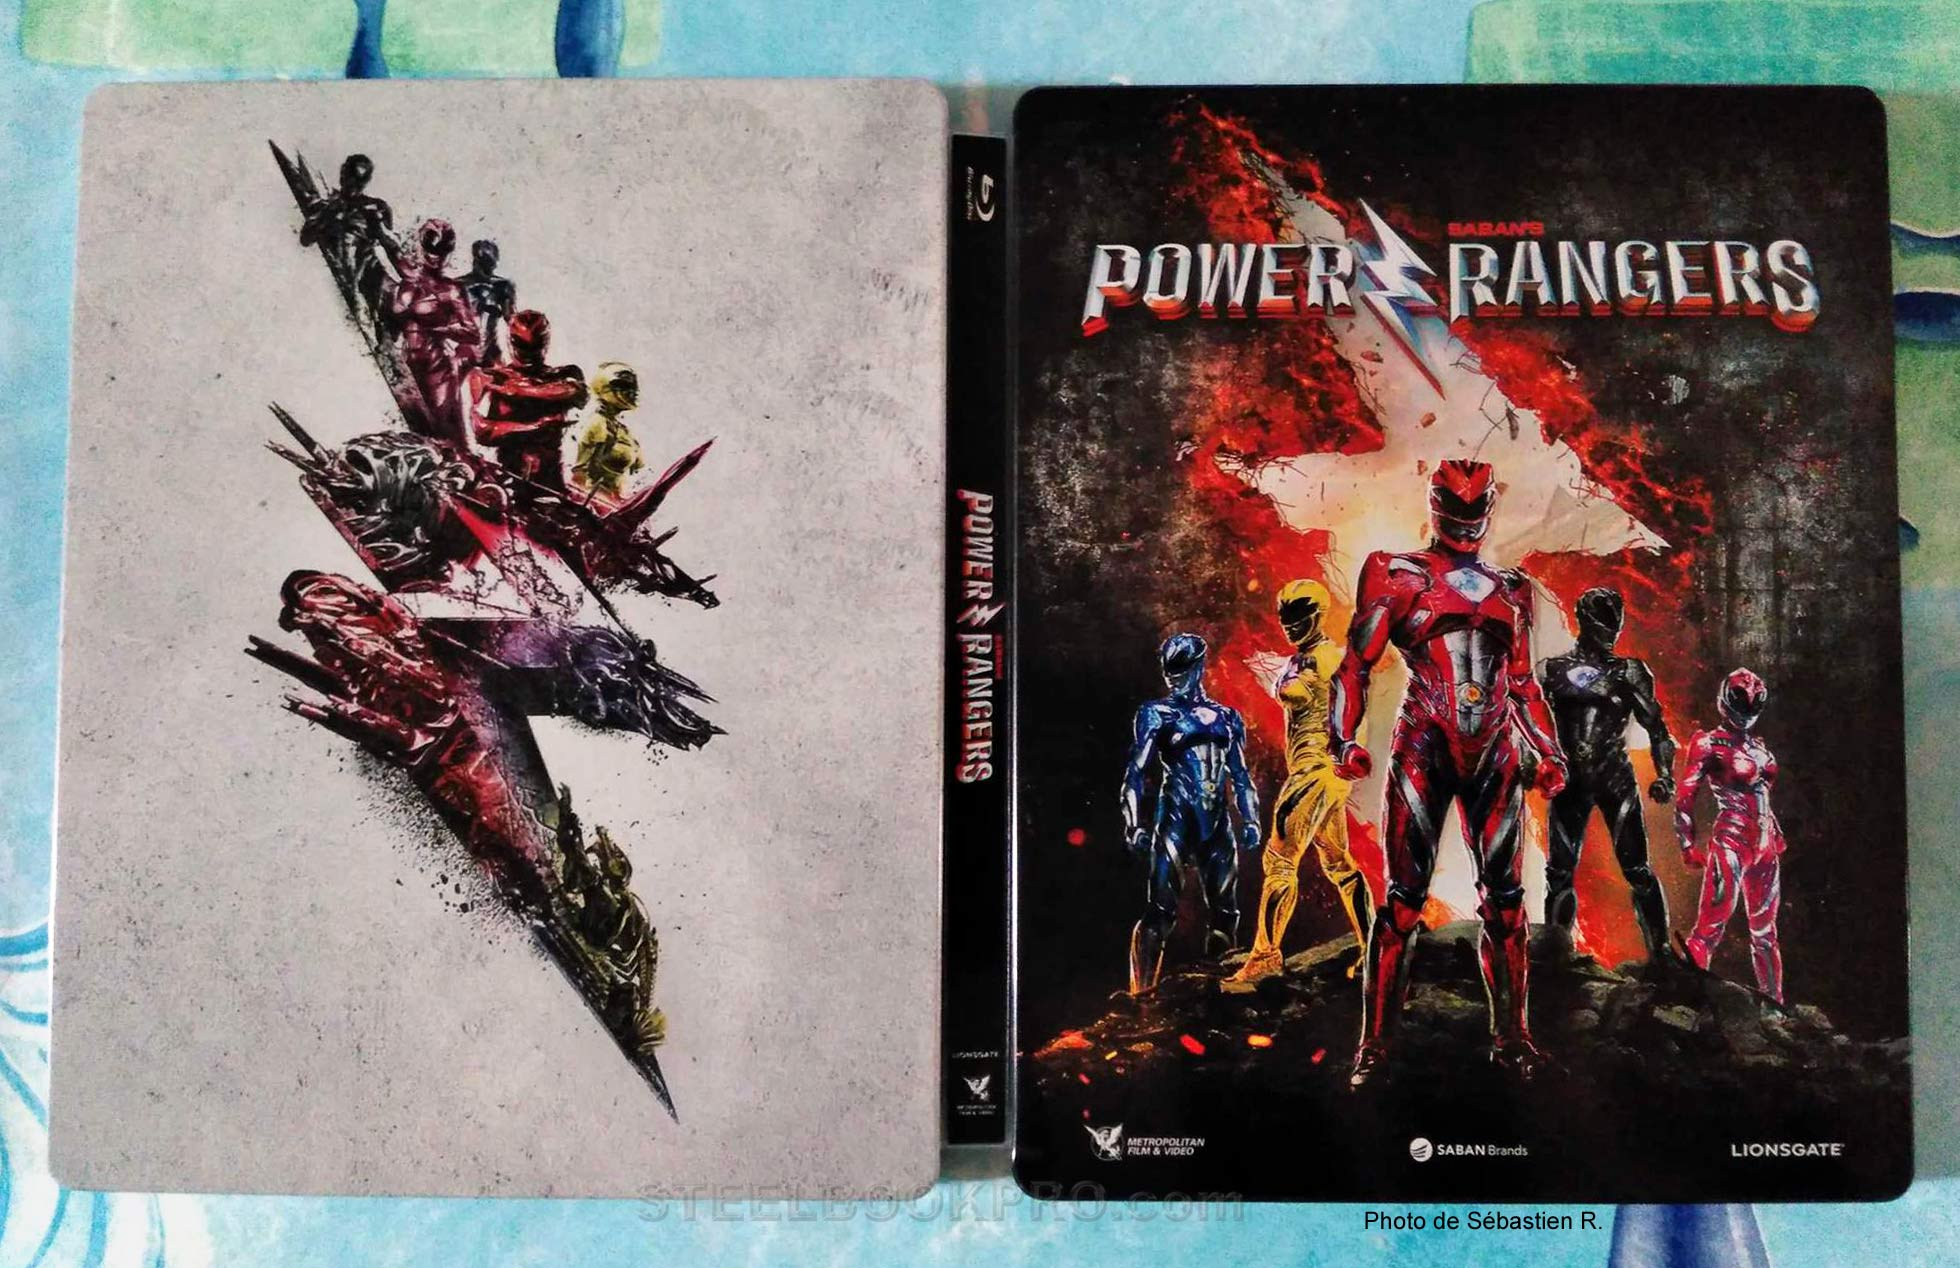 Power-Rangers-steelbook-5